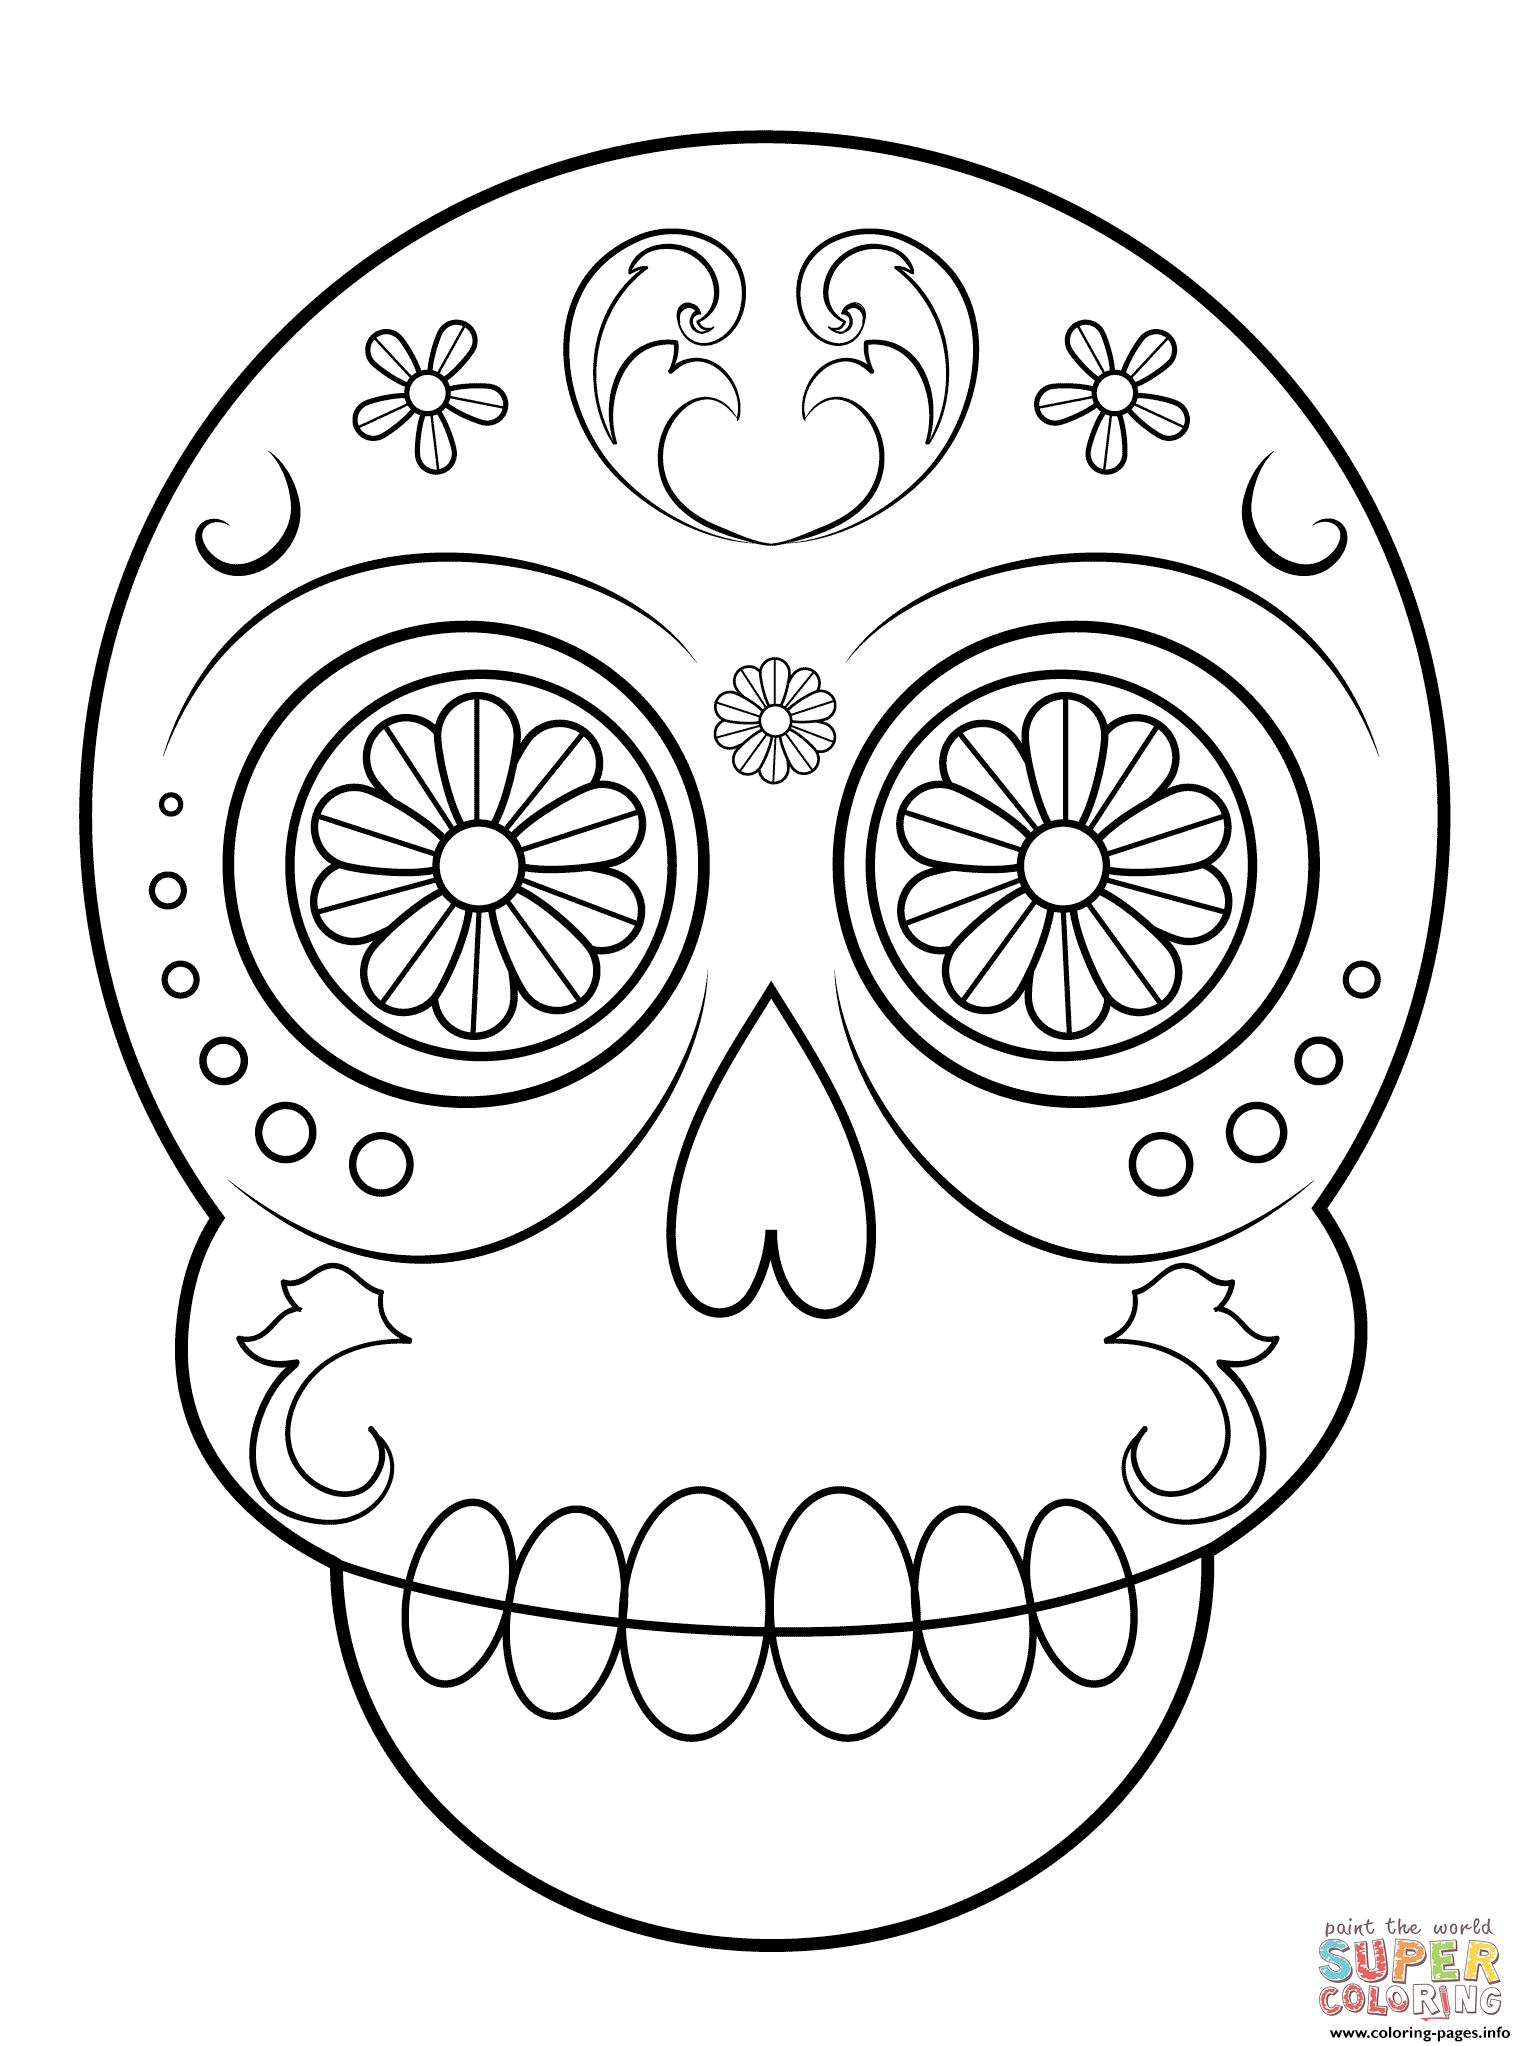 Print Sugar Skull Simple Easy Coloring Pages Skull